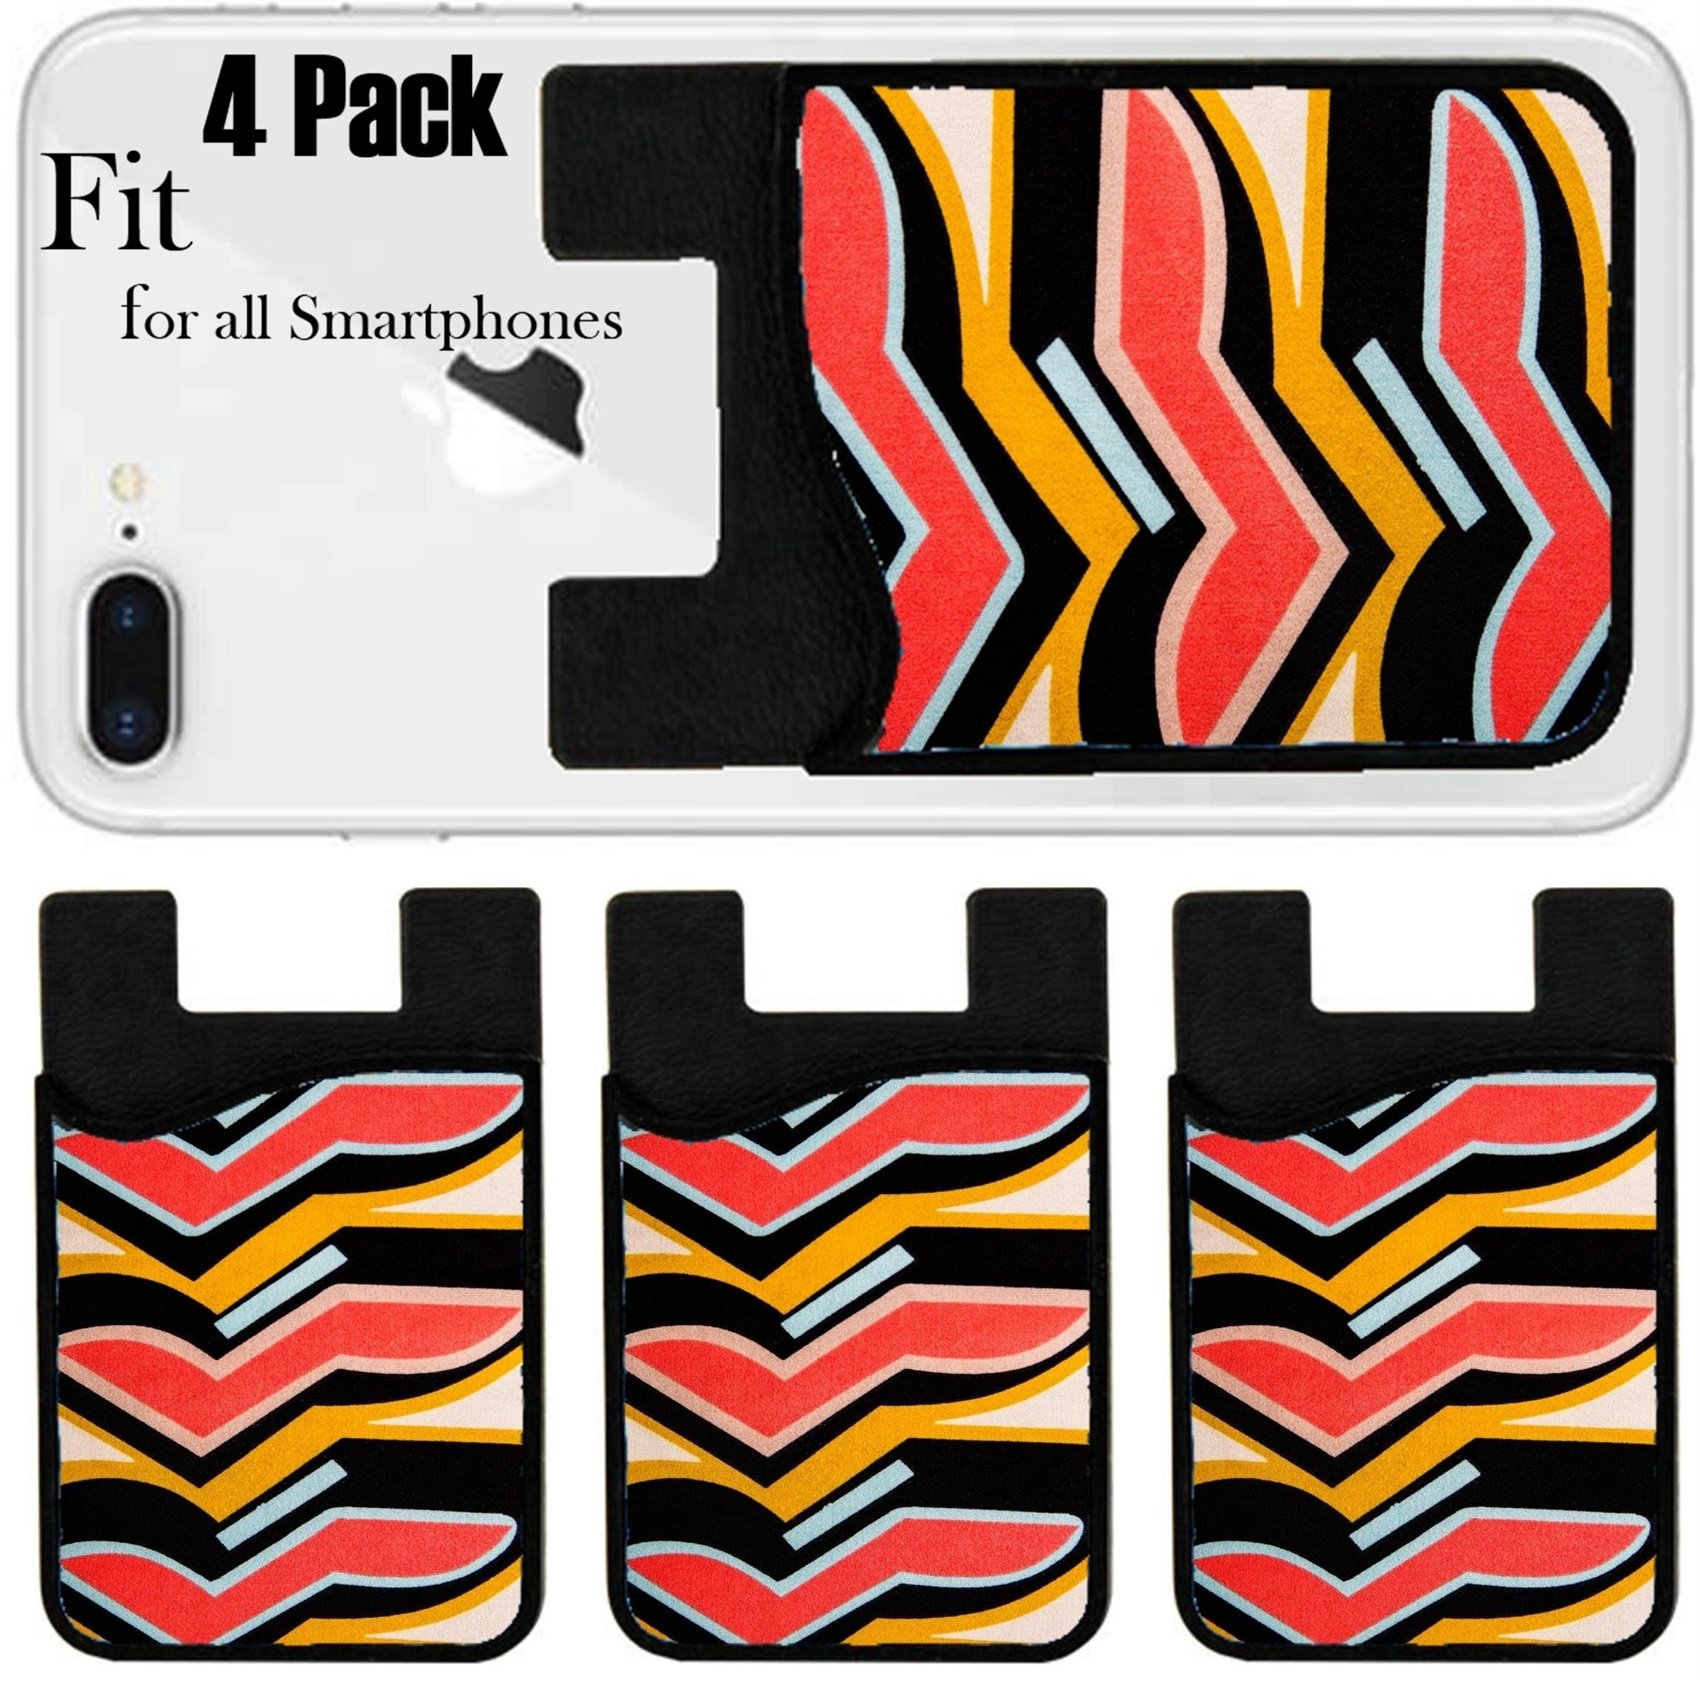 Liili Phone Card holder sleeve/wallet for iPhone Samsung Android and all smartphones with removable microfiber screen cleaner Silicone card Caddy(4 Pack) ID: 25677602 Multicolored seamless canvas wit